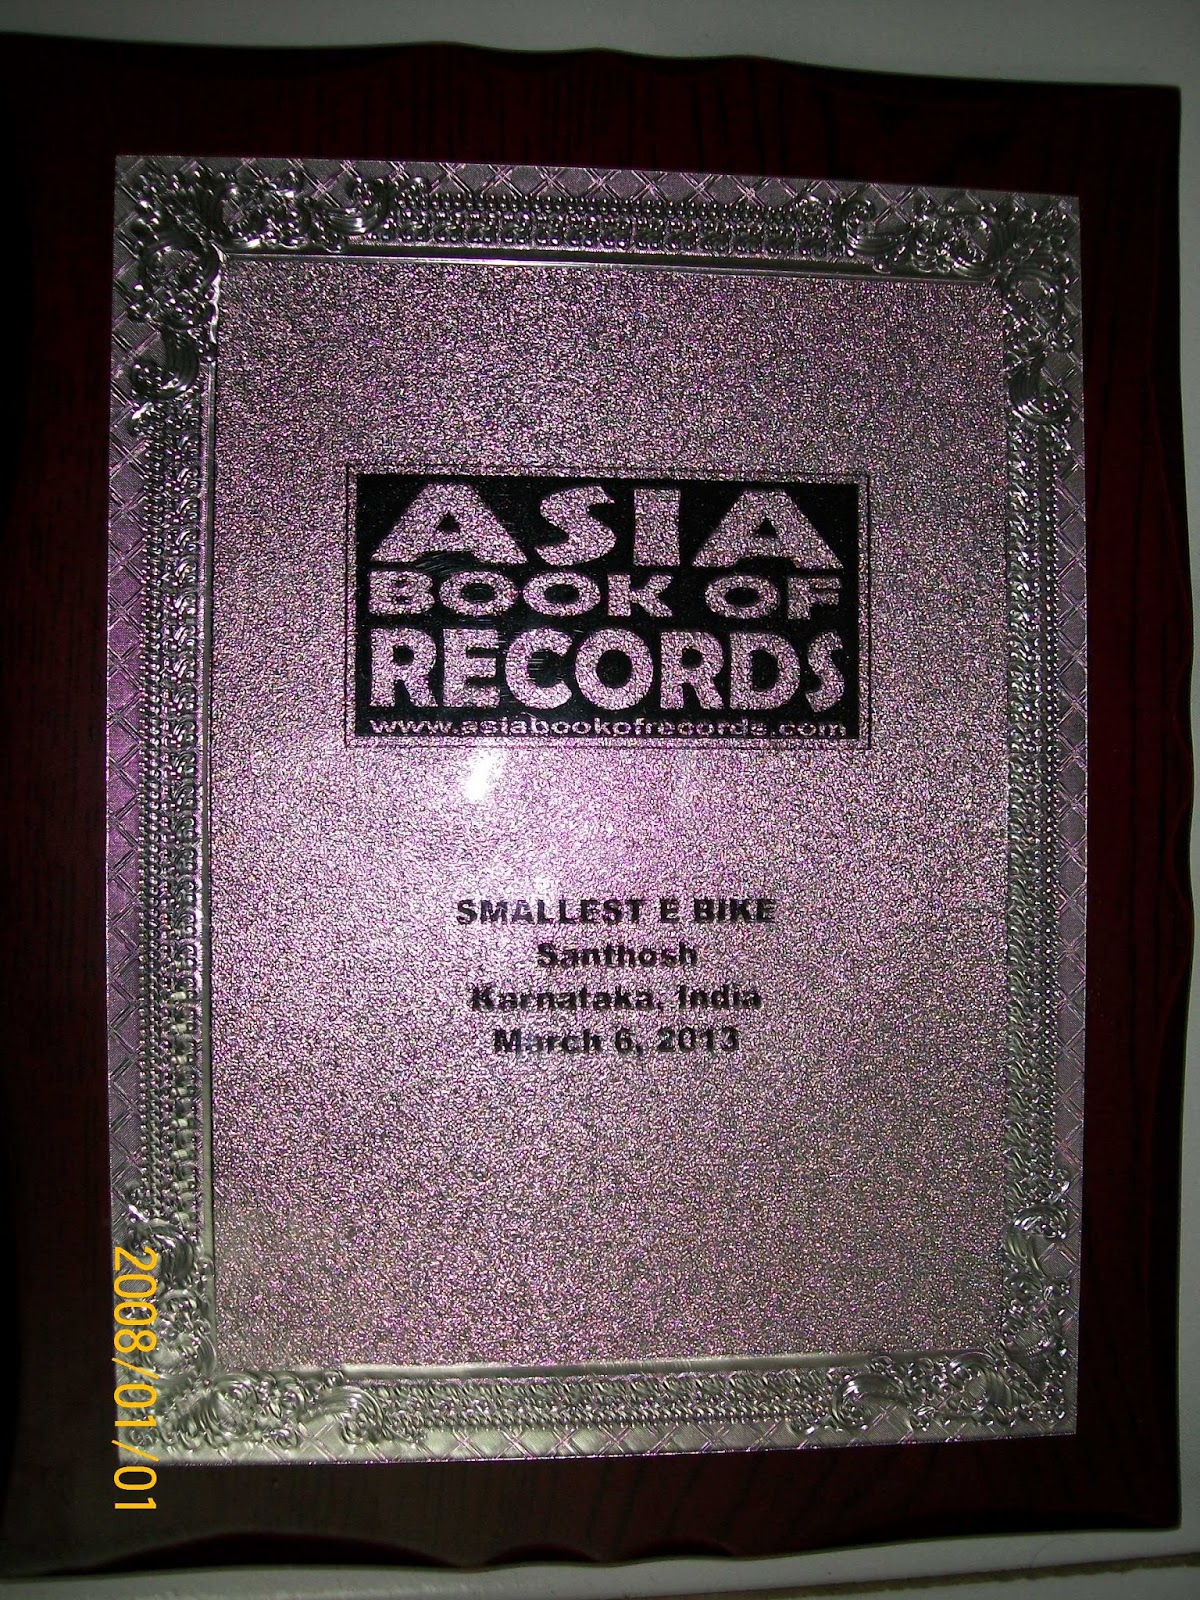 Moosshiqk on Asia Book of Records